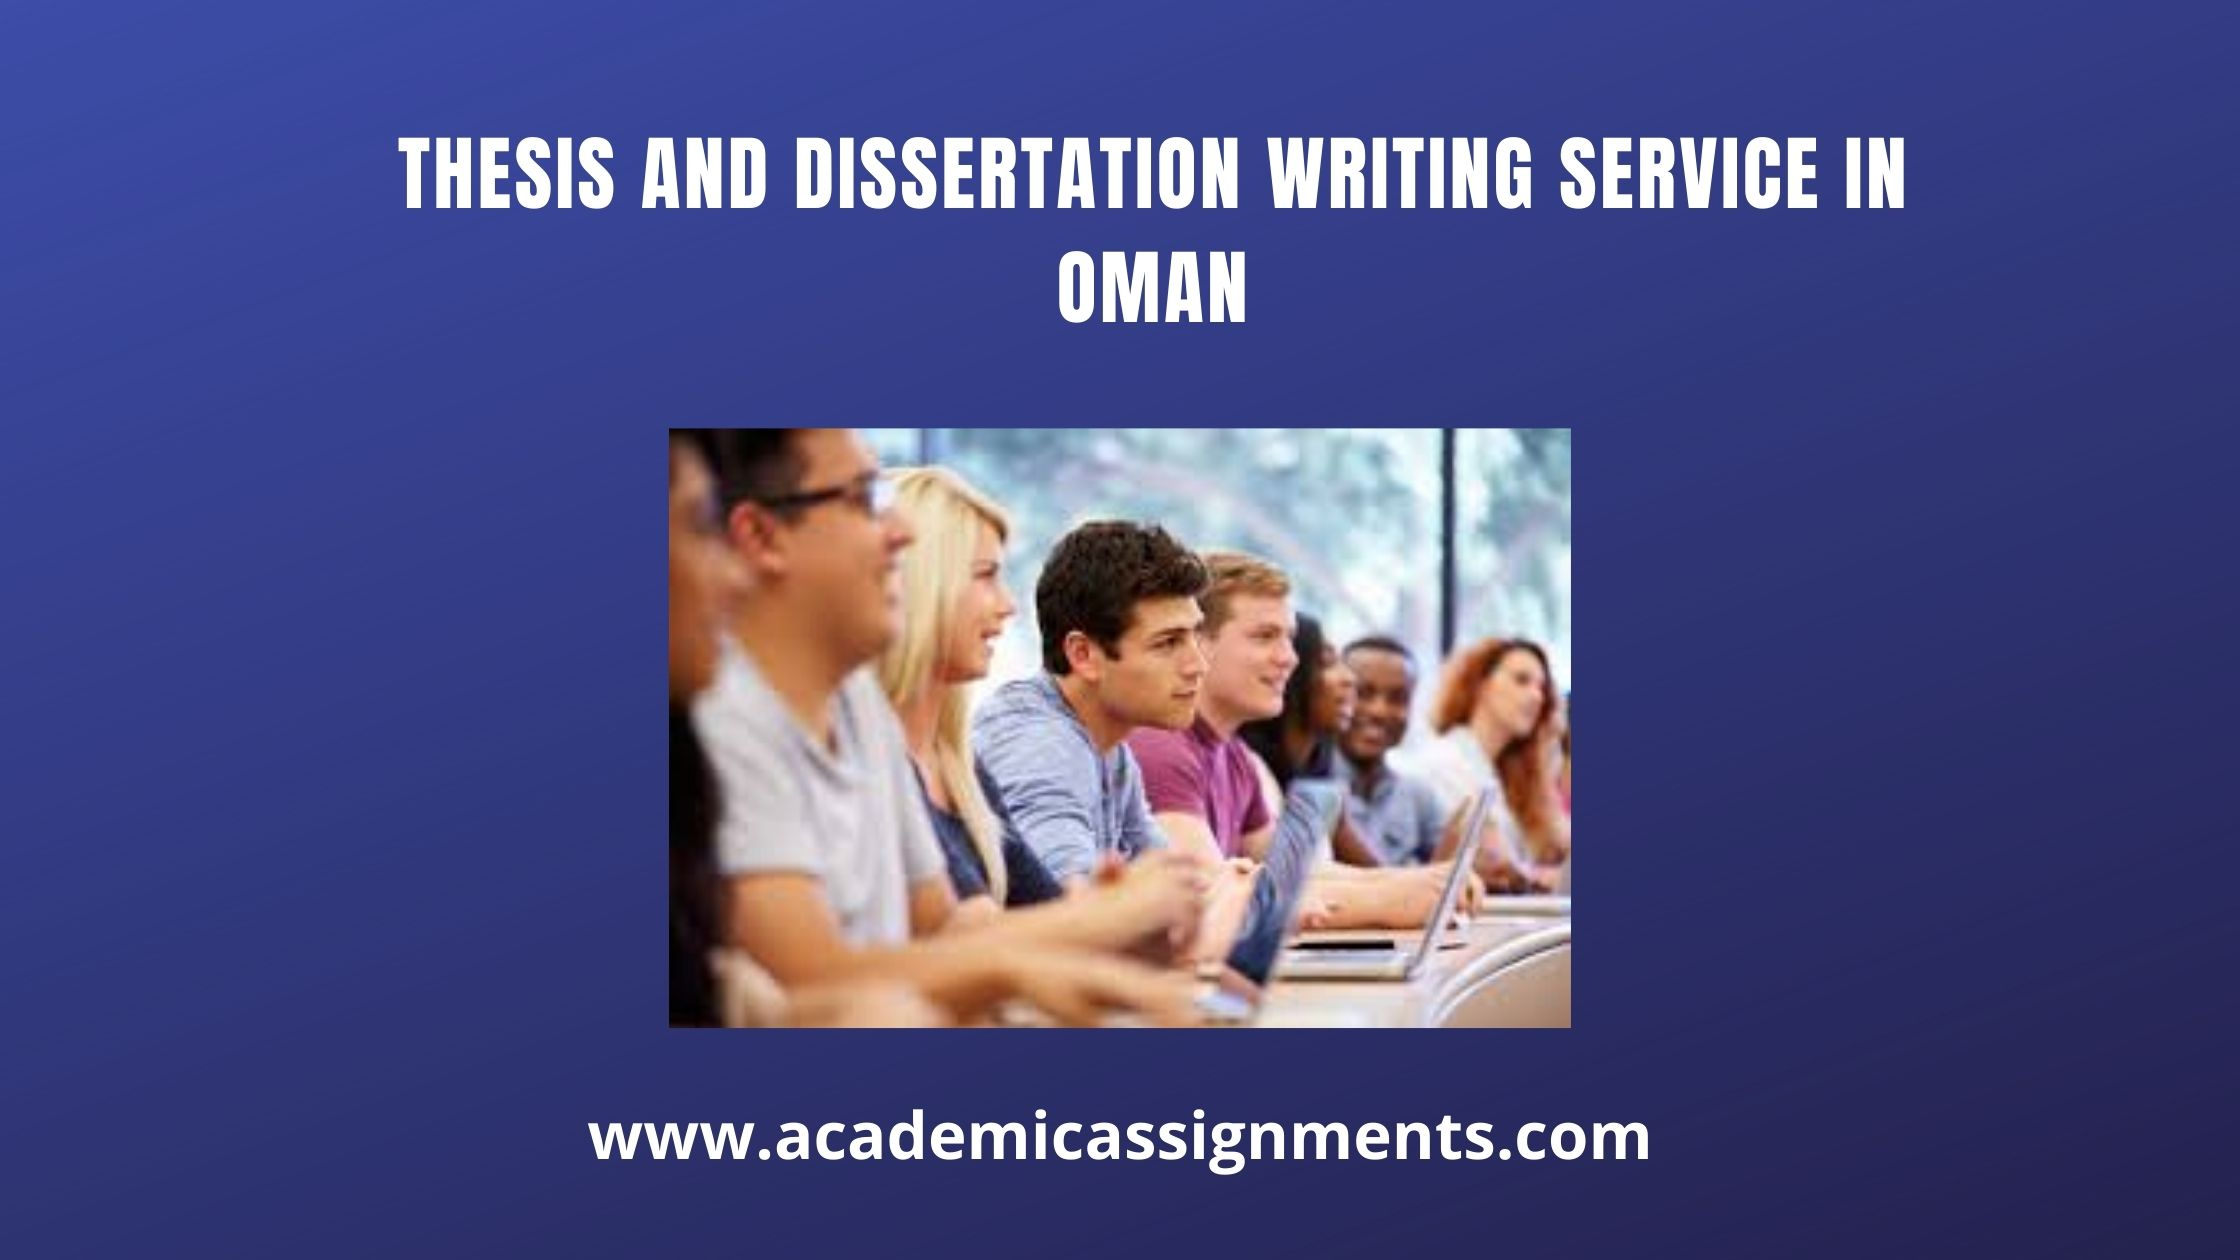 Thesis and Dissertation Writing Service in Oman